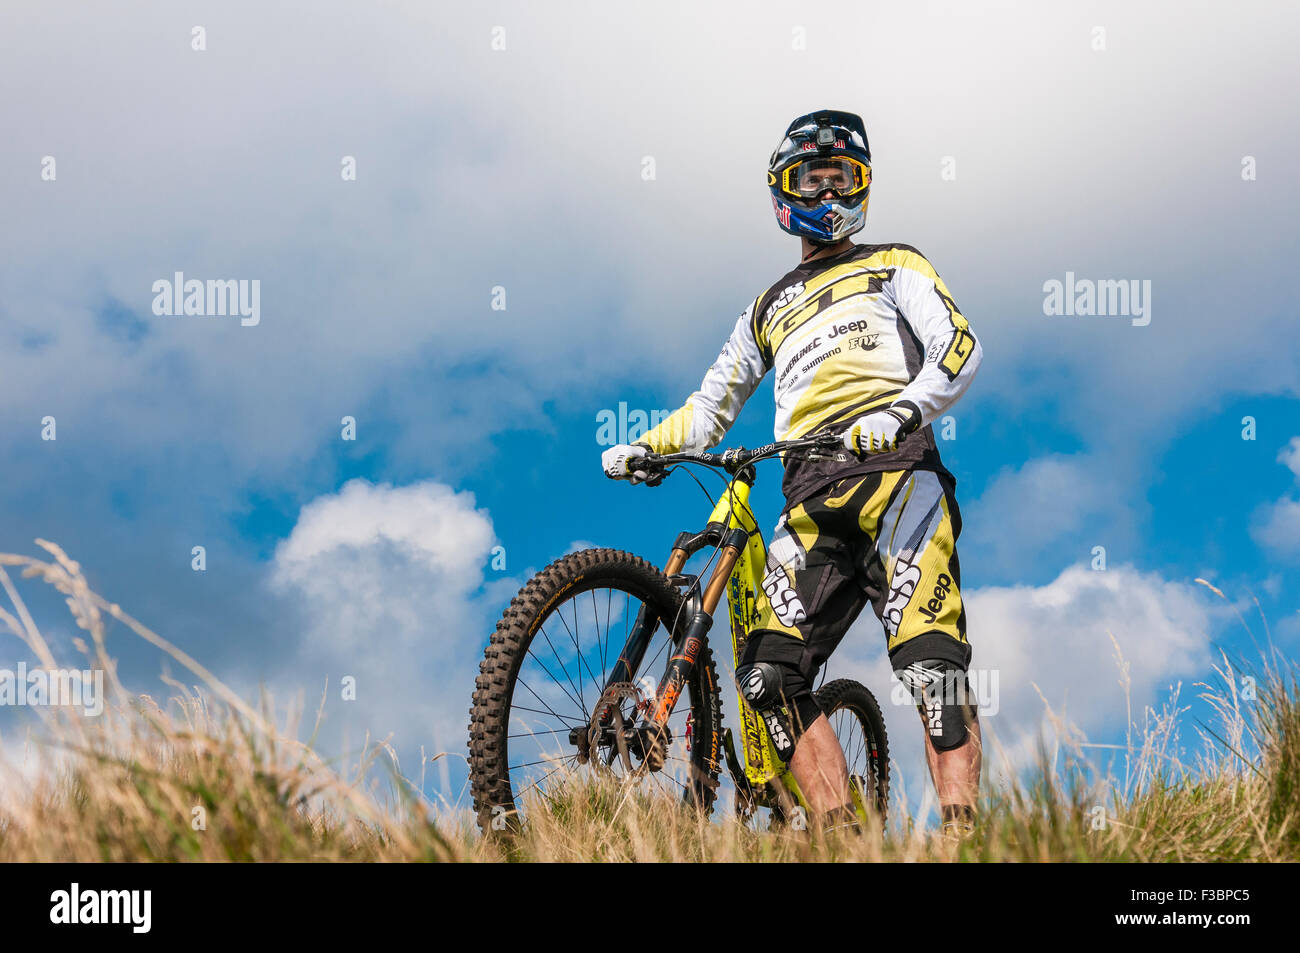 Rostrevor, Northern Ireland. 04 Oct 2015 - George 'Gee' Atherton, twice downhill world champion, is 'The - Stock Image